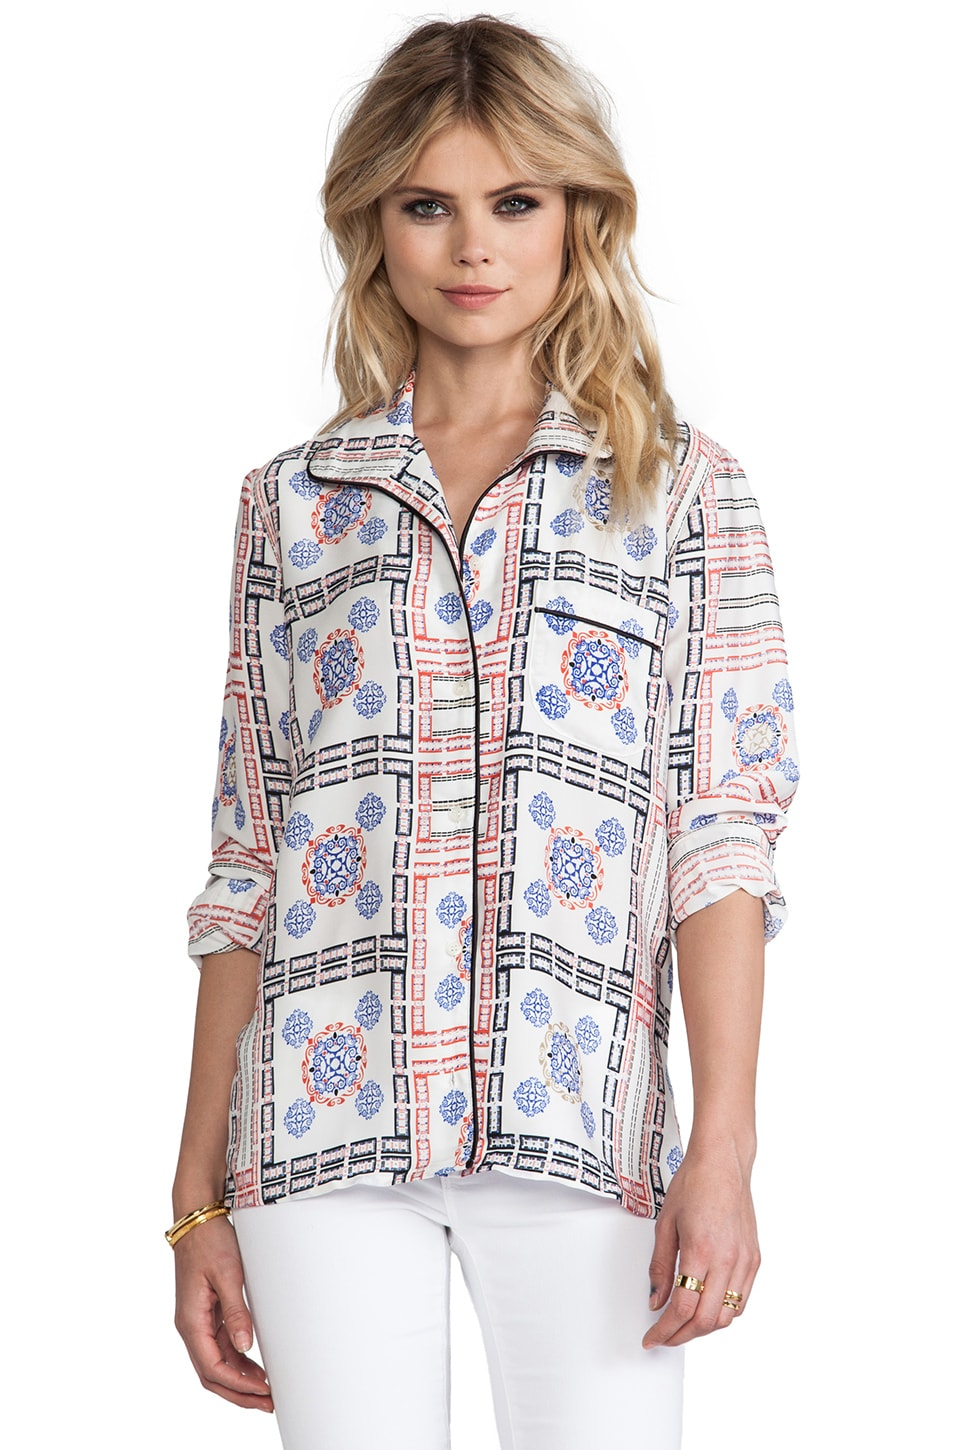 Pencey Lounge Blouse in Print